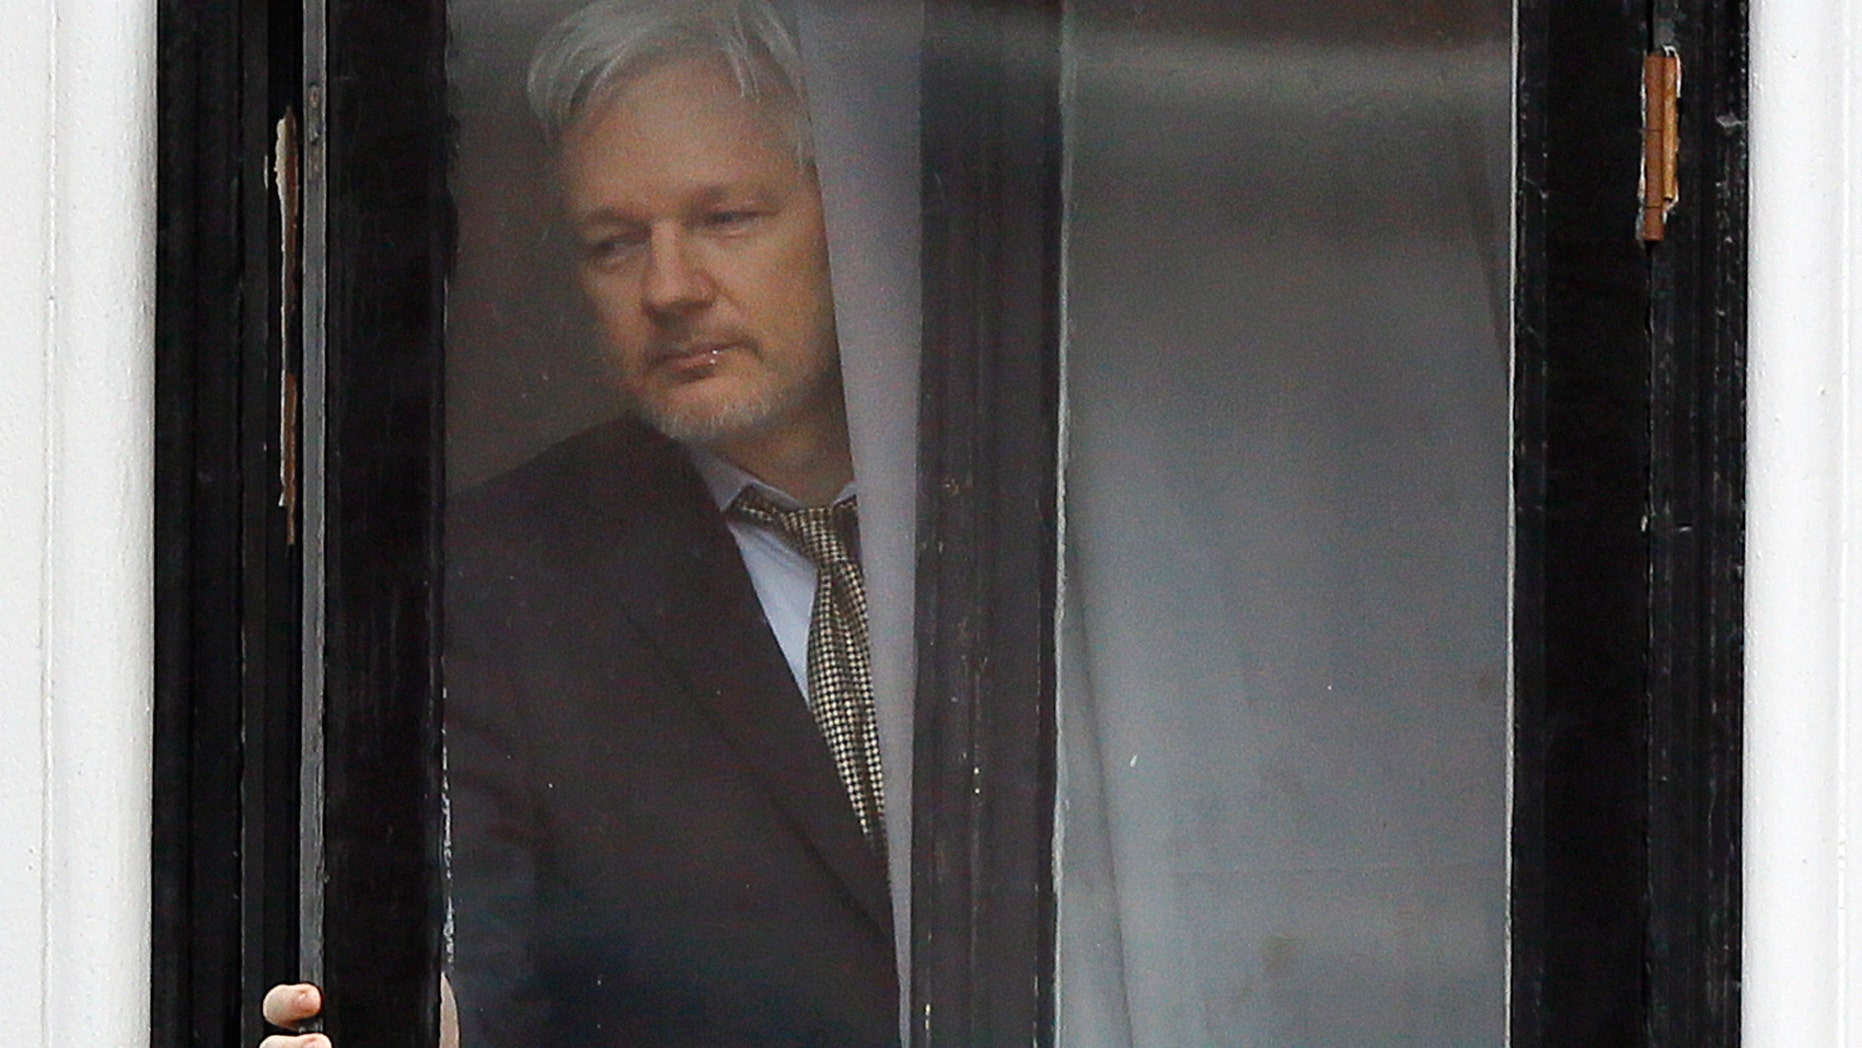 FILE - In this Feb. 5, 2016 file photo, Wikileaks founder Julian Assange walks onto the balcony of the Ecuadorean Embassy in London. An Ecuadorean judge ruled Monday, Oct. 29, 2018 against a request by him to loosen requirements he says are meant to push him out of the London embassy where he lives. (AP Photo/Kirsty Wigglesworth, File)